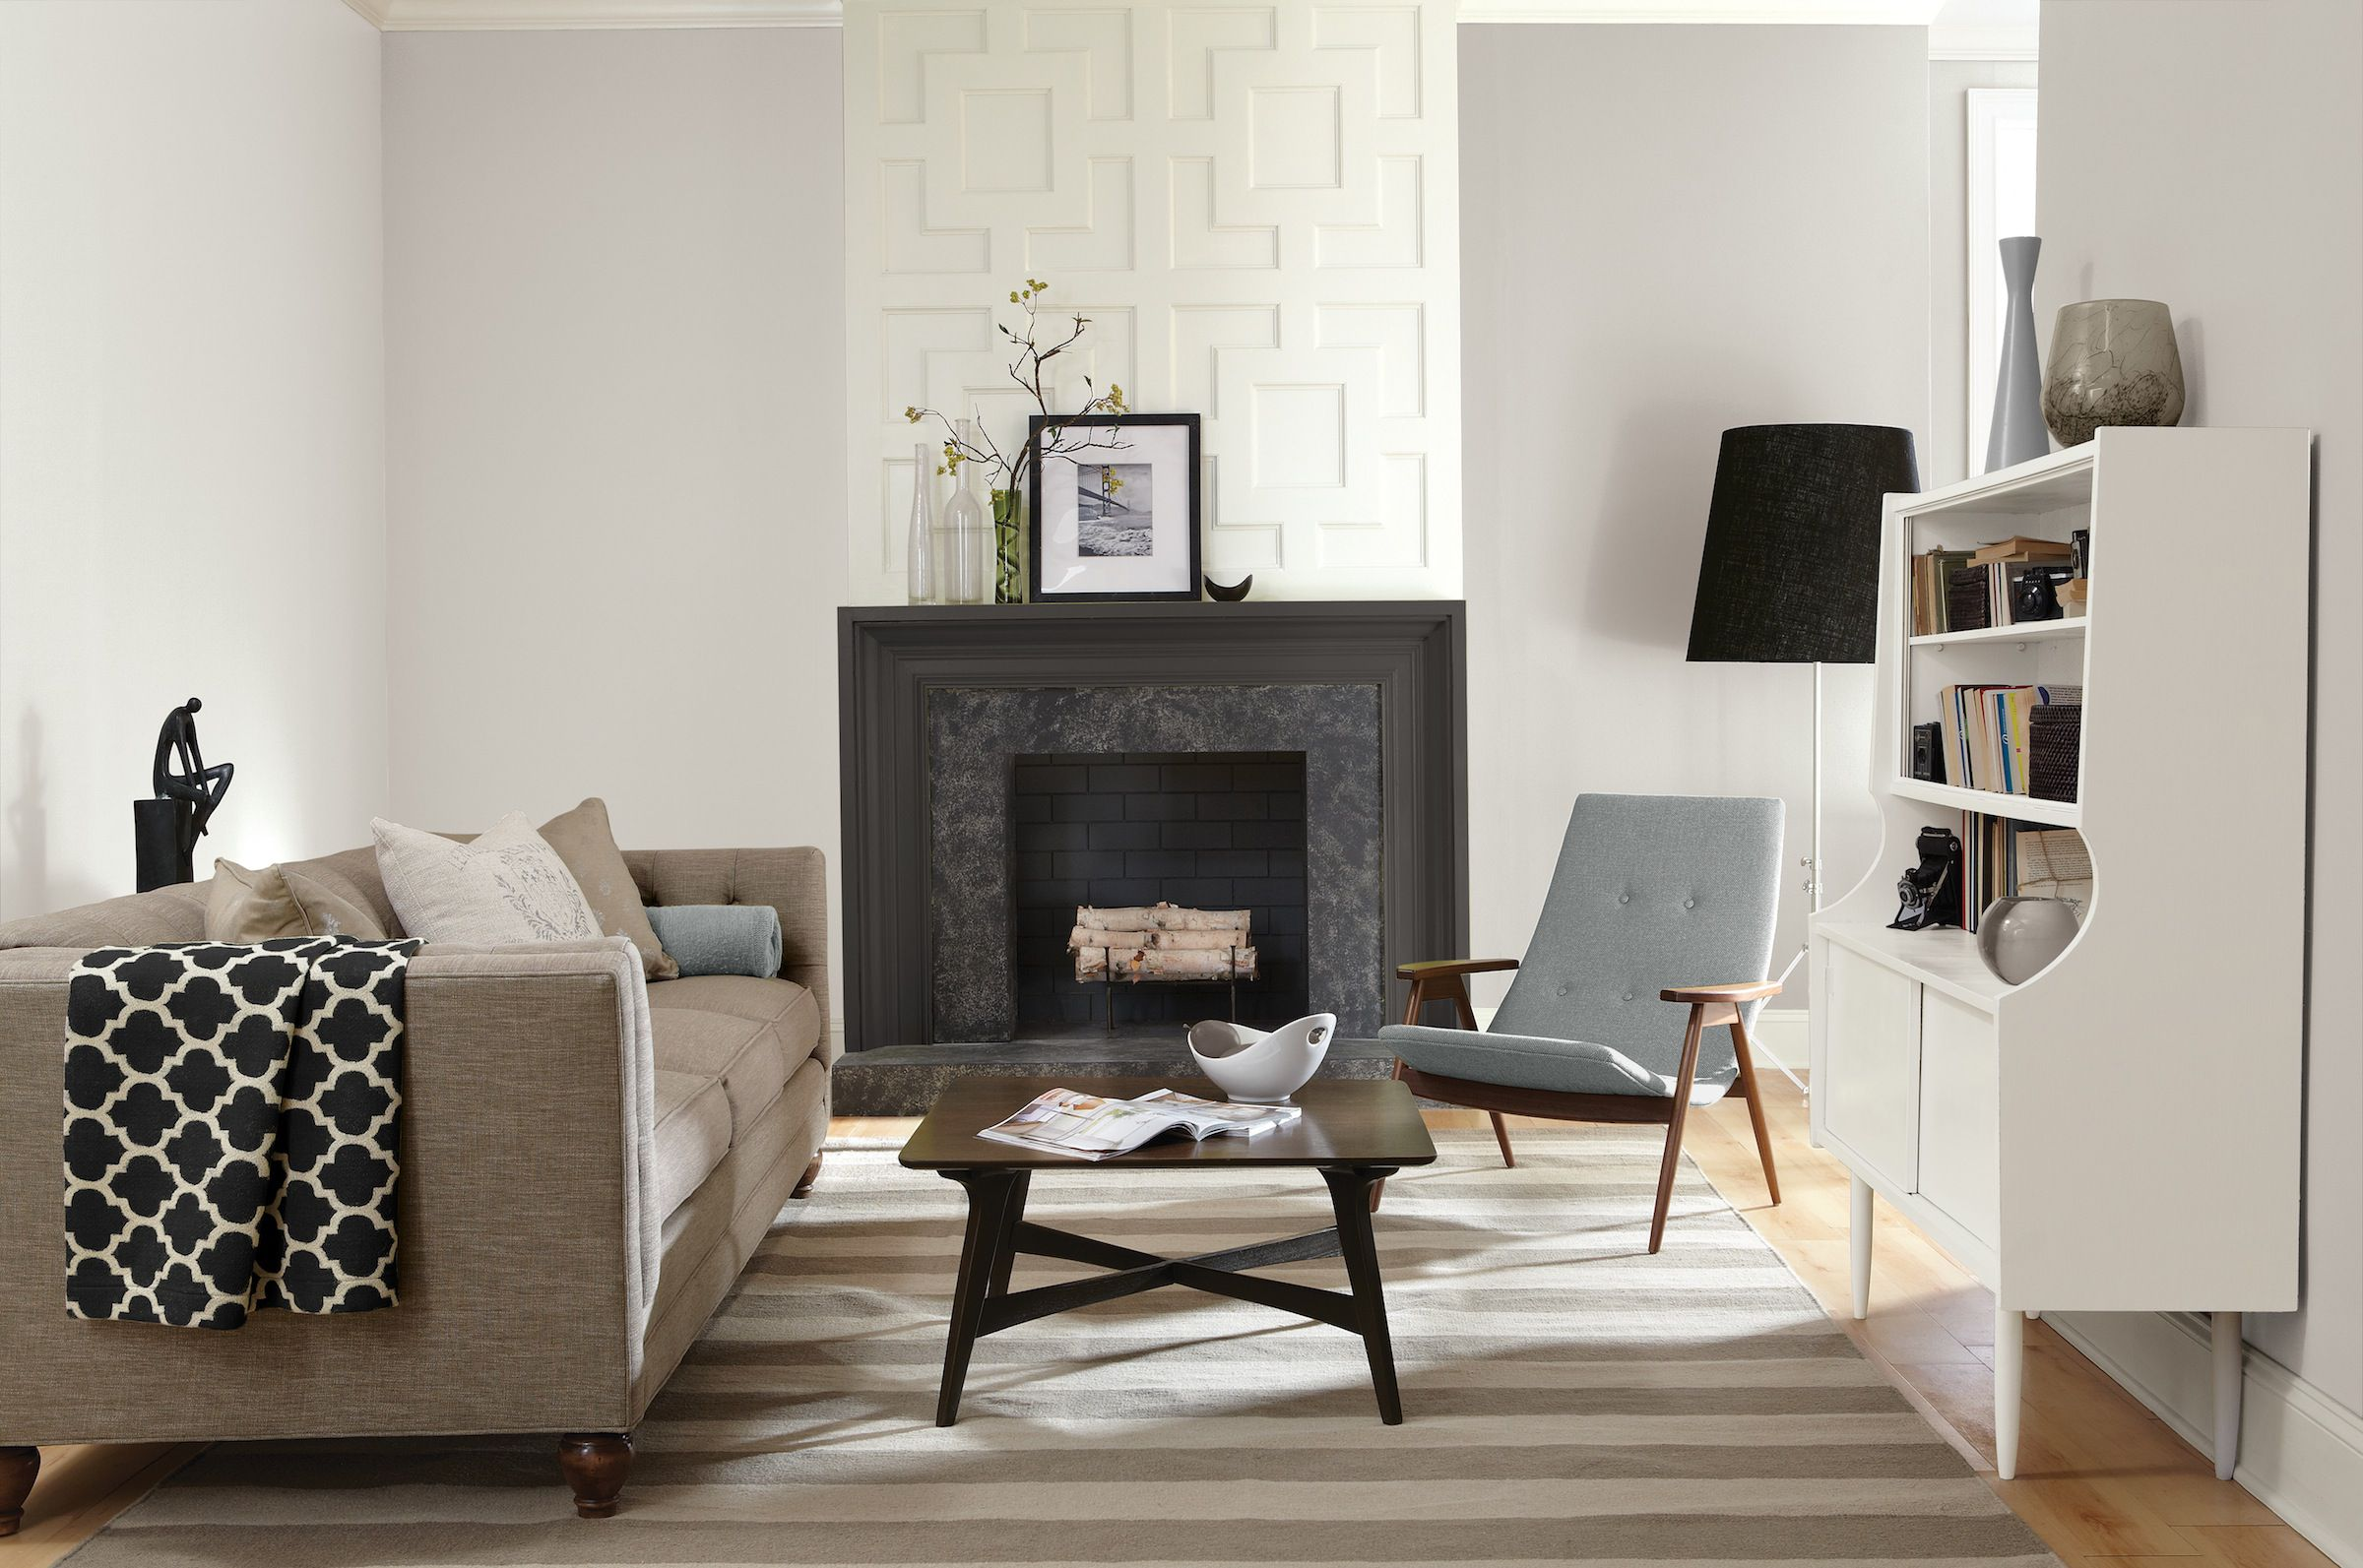 Glidden Smoky Charcoal top 9 neutral paint colors for a new home